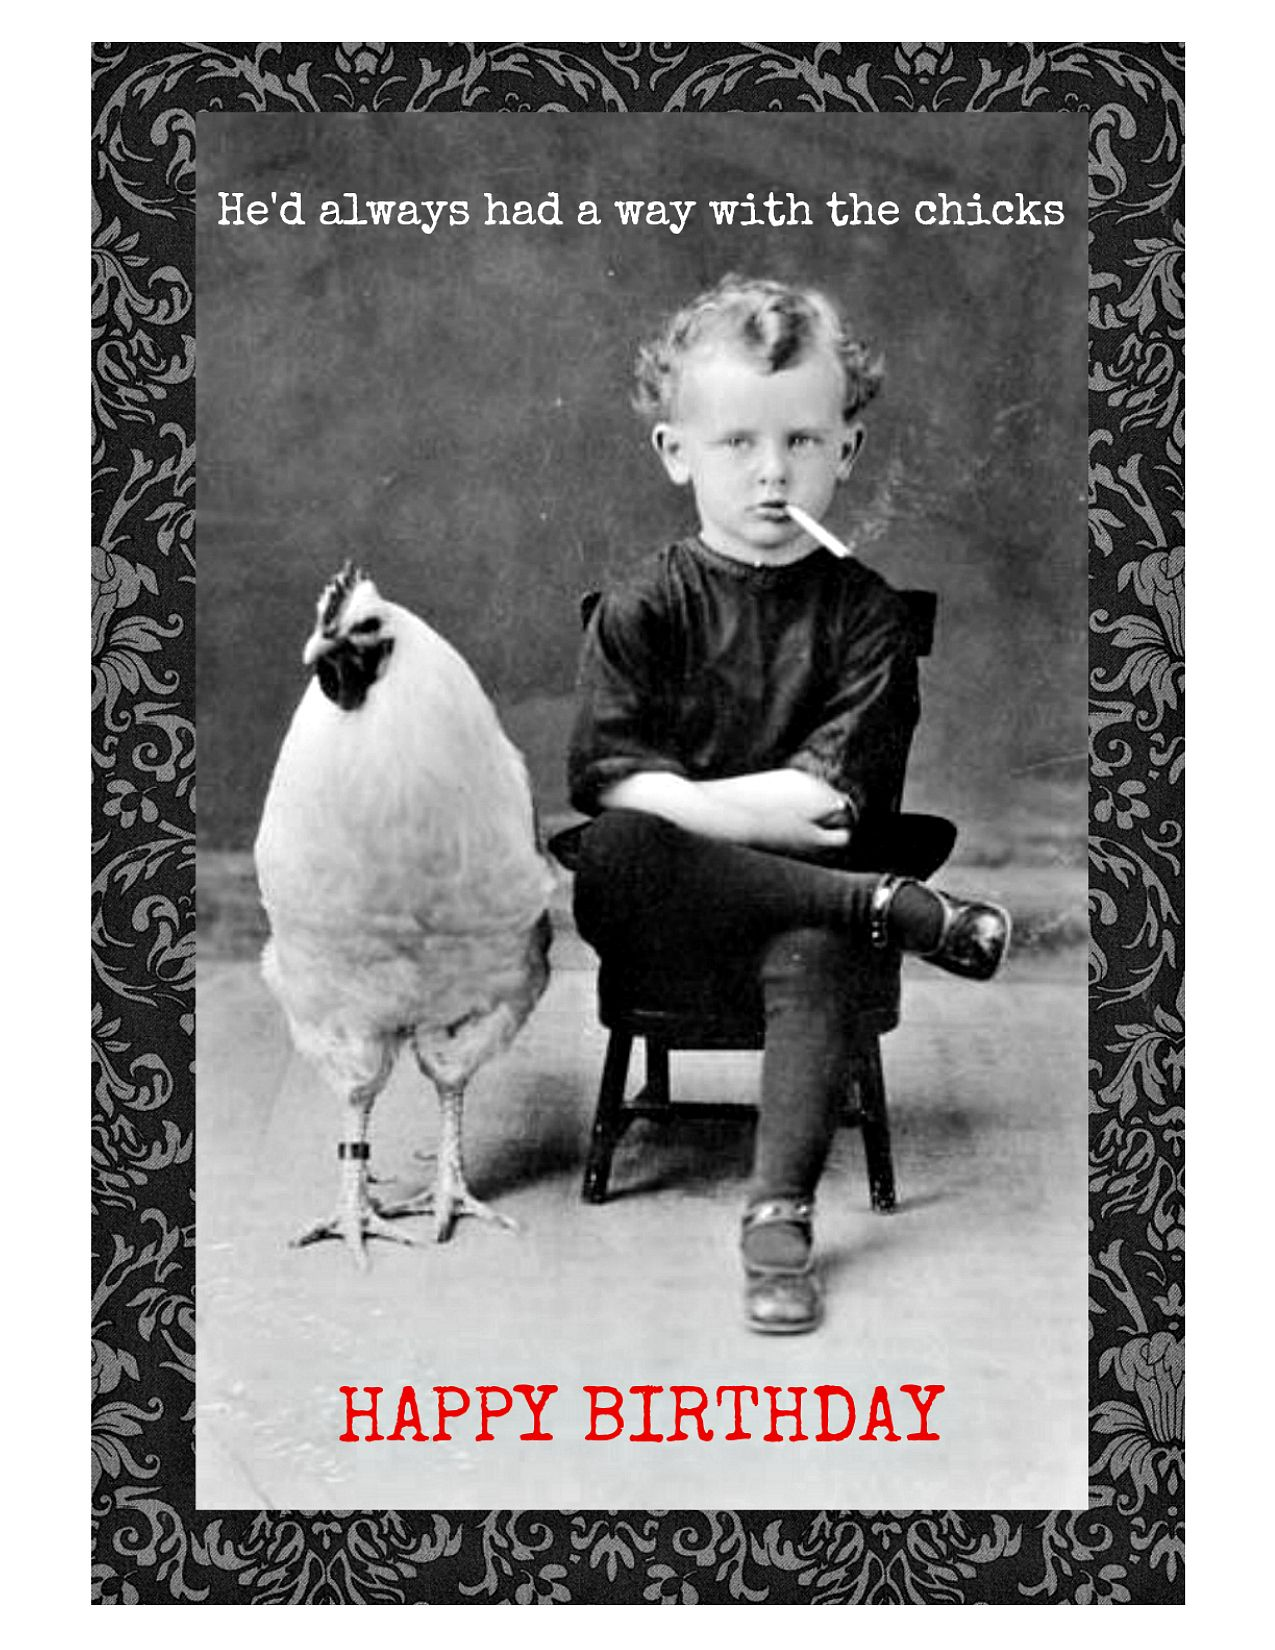 Chicks Birthday Card Birthday Cards For Men Verjaardagsfoto S